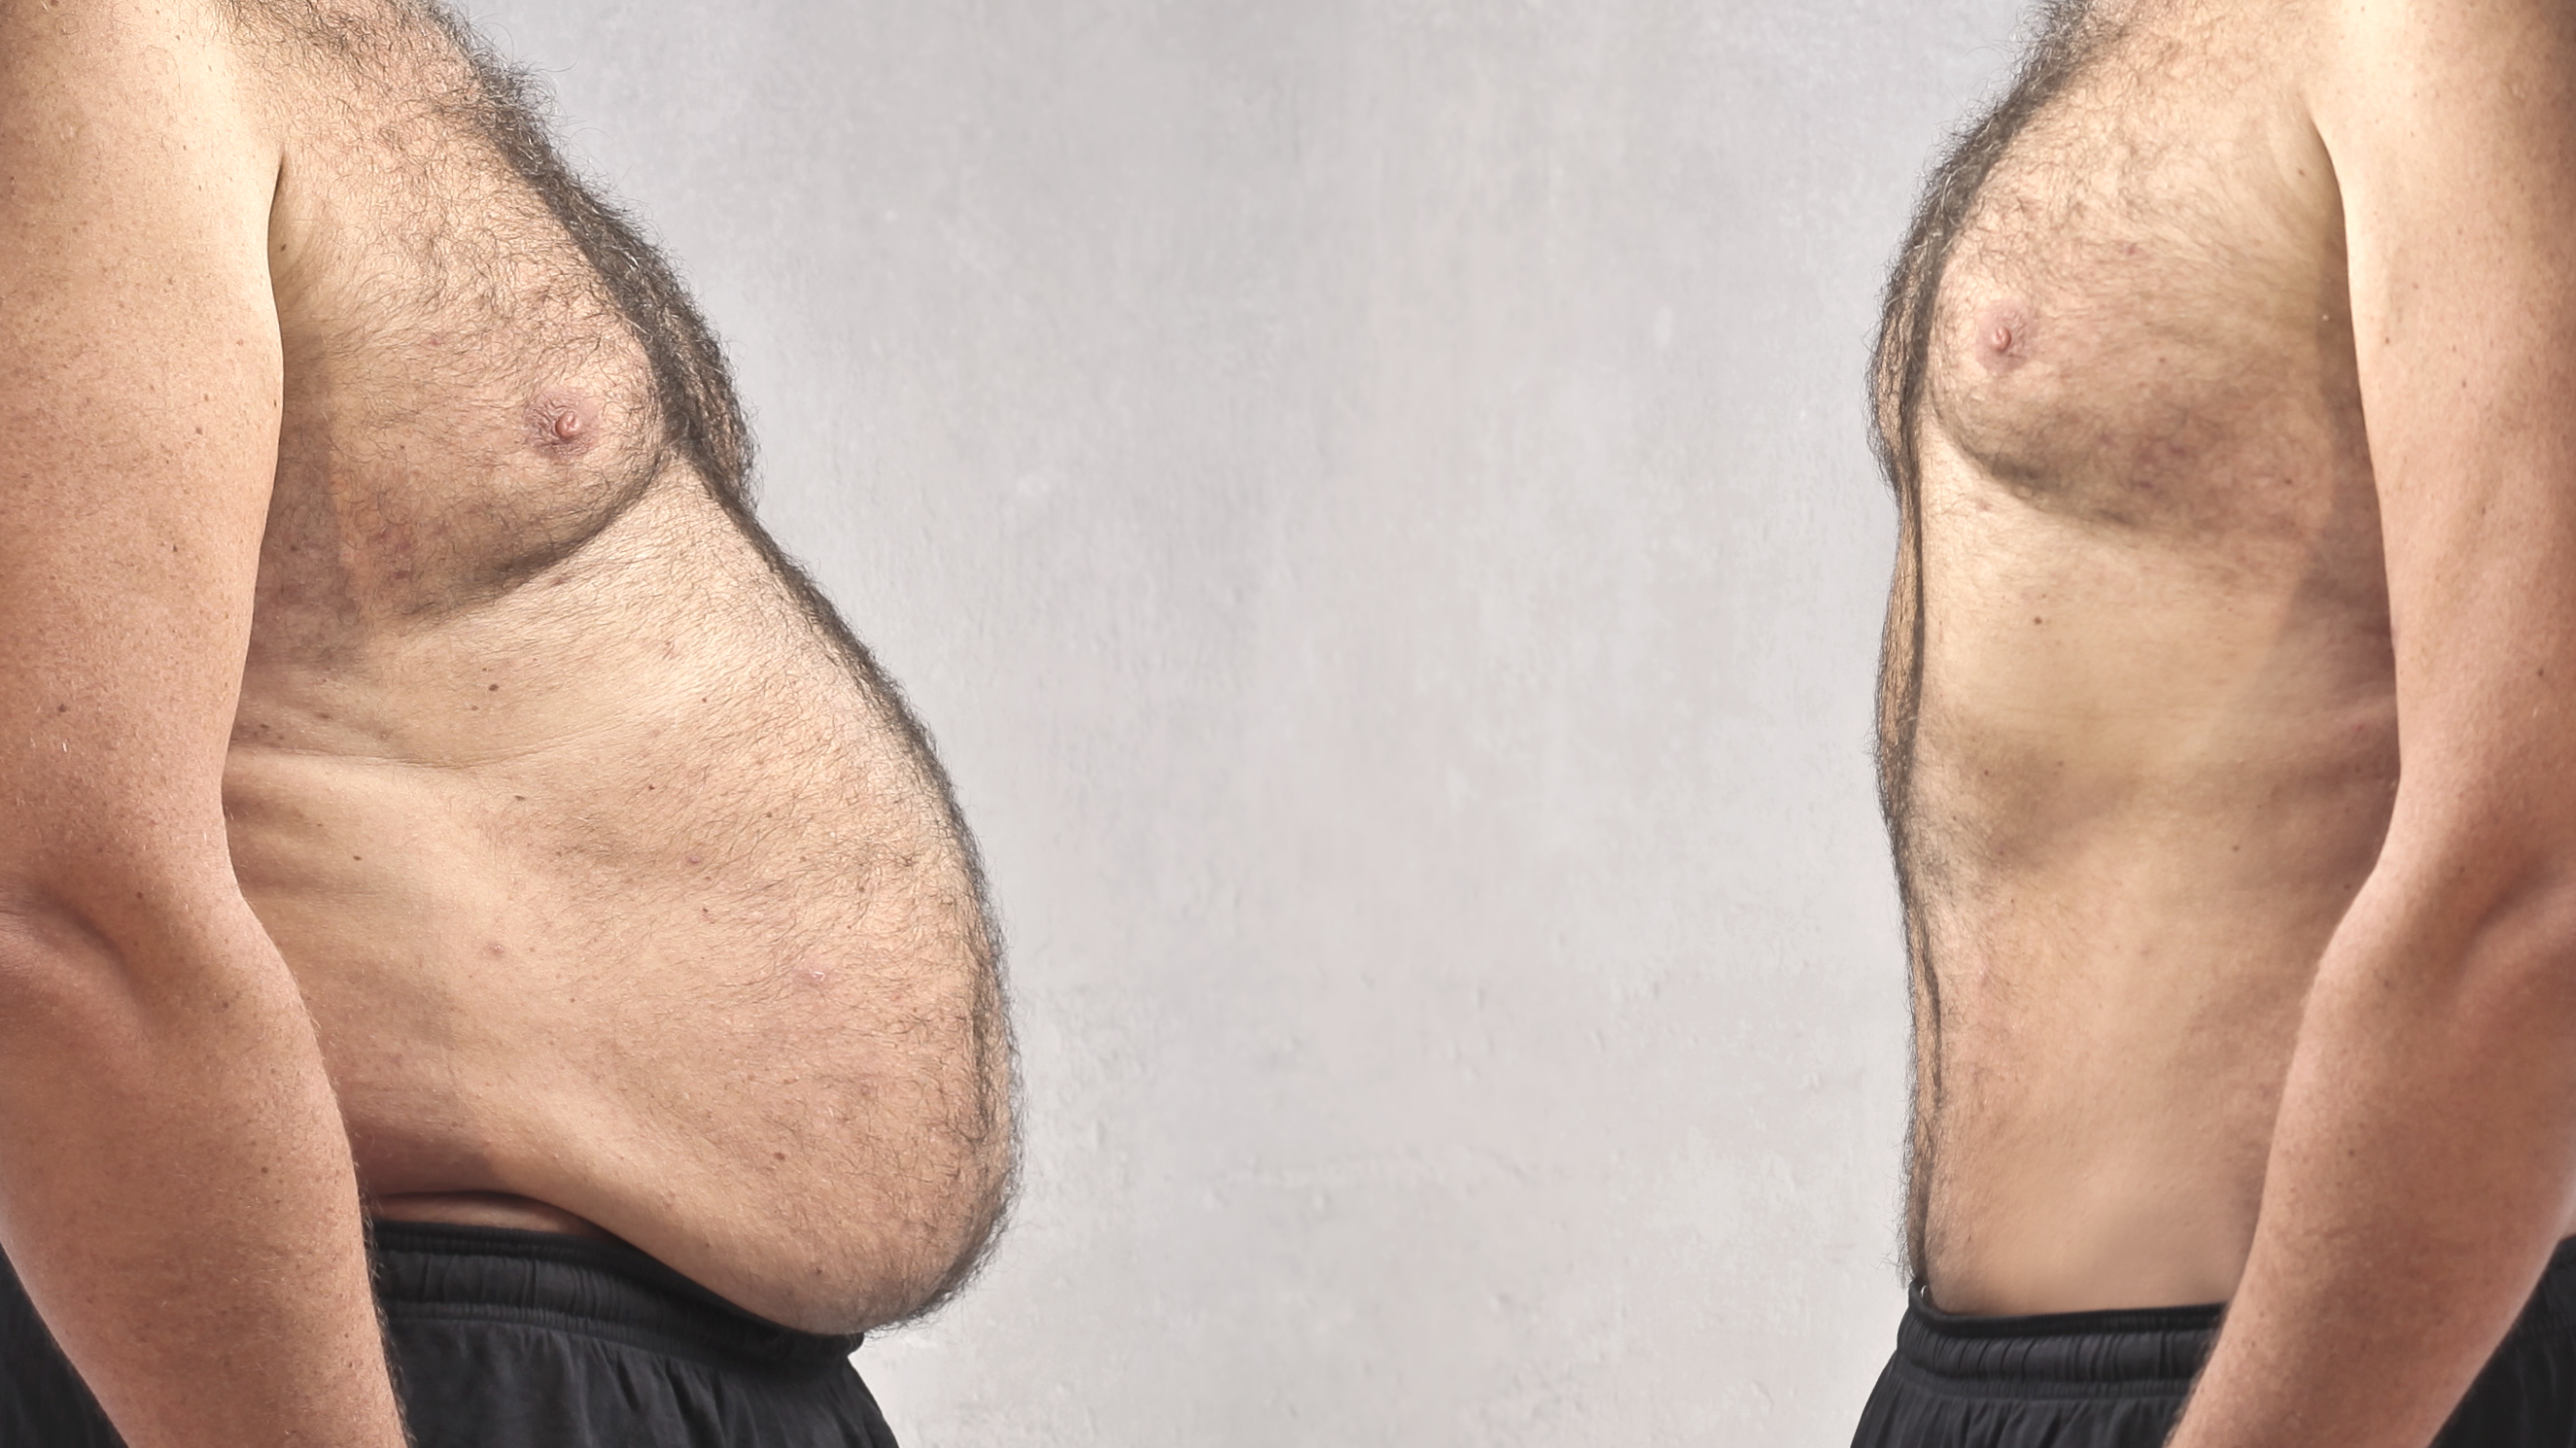 Click here to read If You're Fat, Your Friends Will Always See You That Way